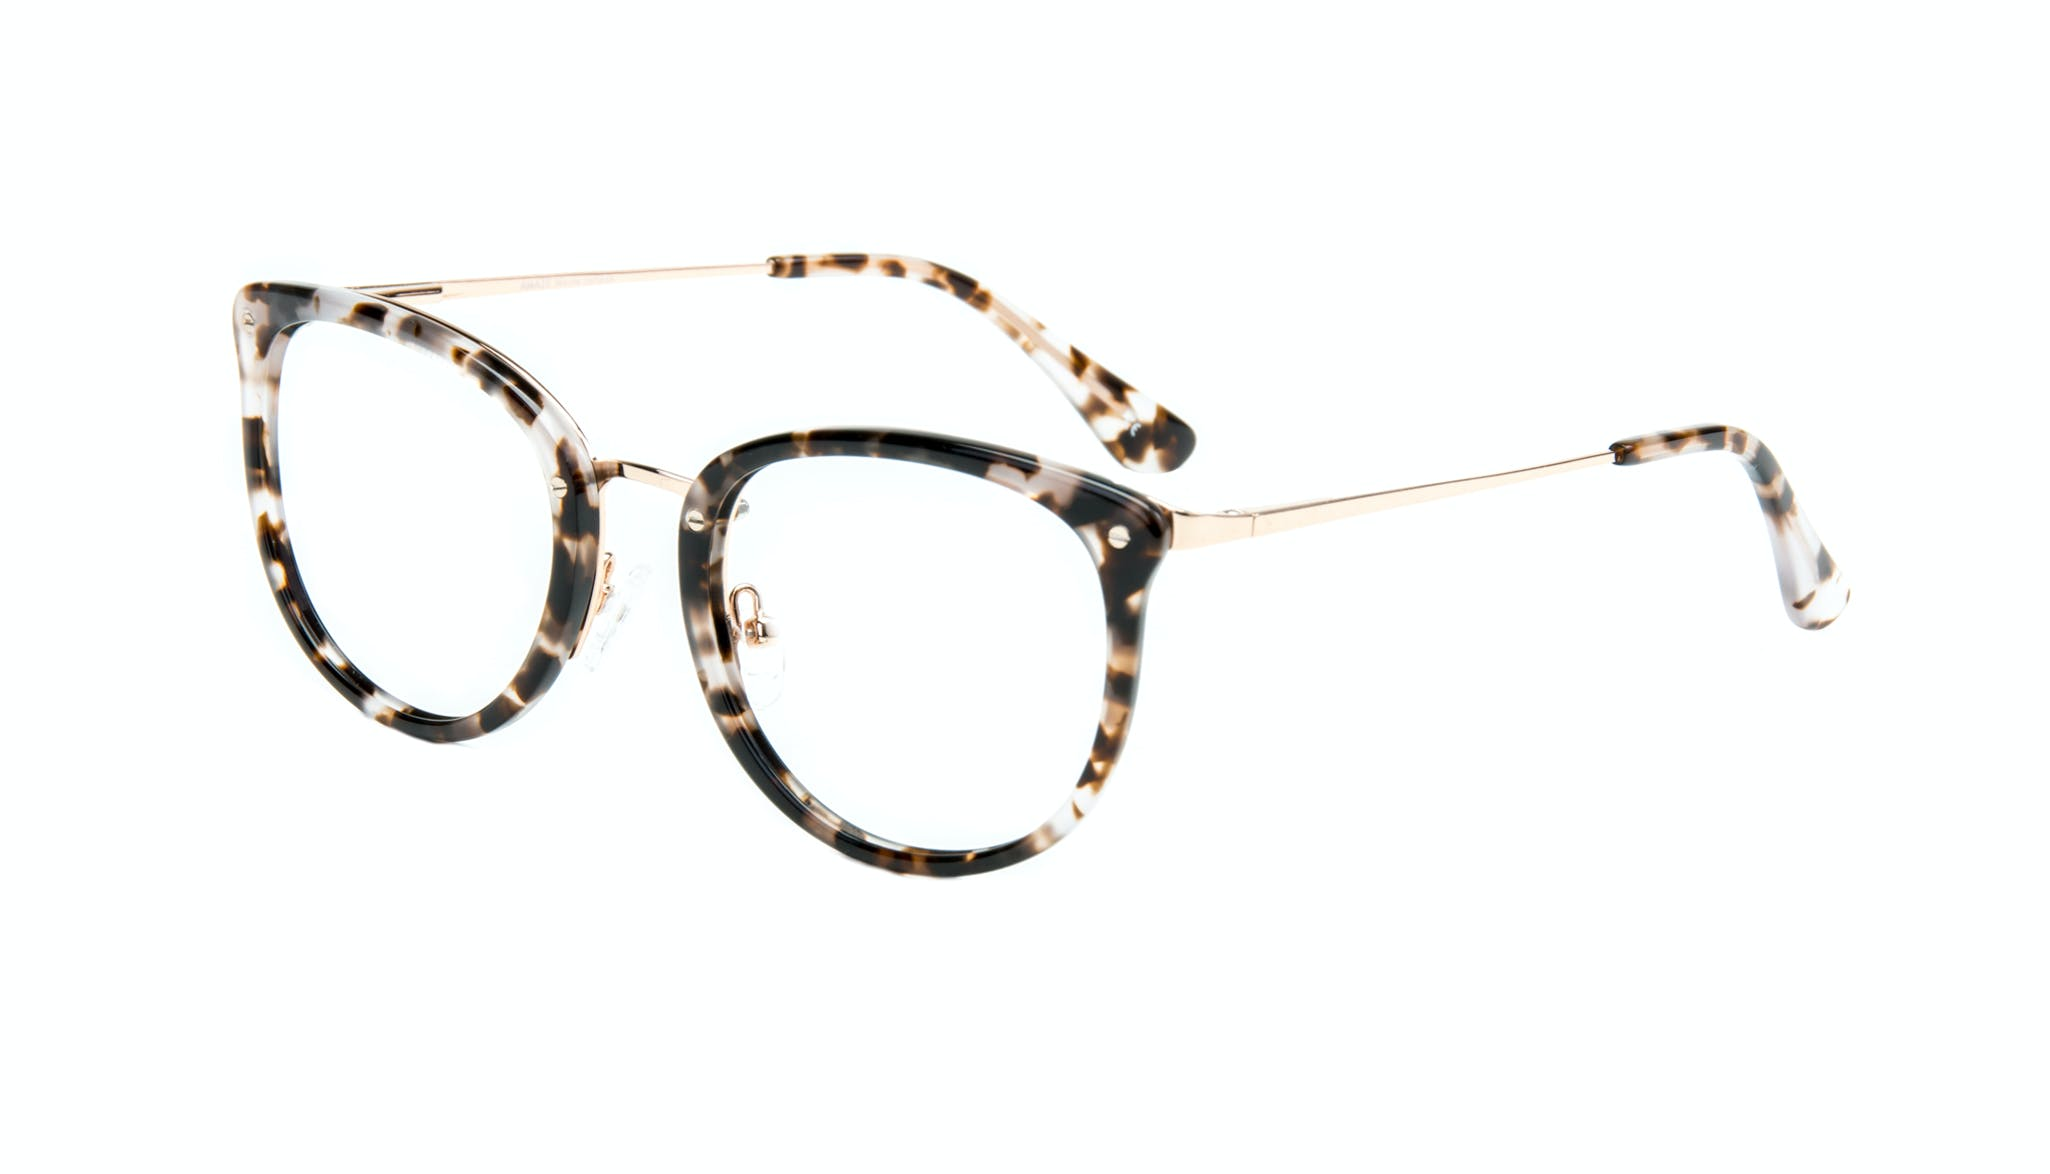 Affordable Fashion Glasses Square Round Eyeglasses Women Amaze Mocha Tortoise Tilt